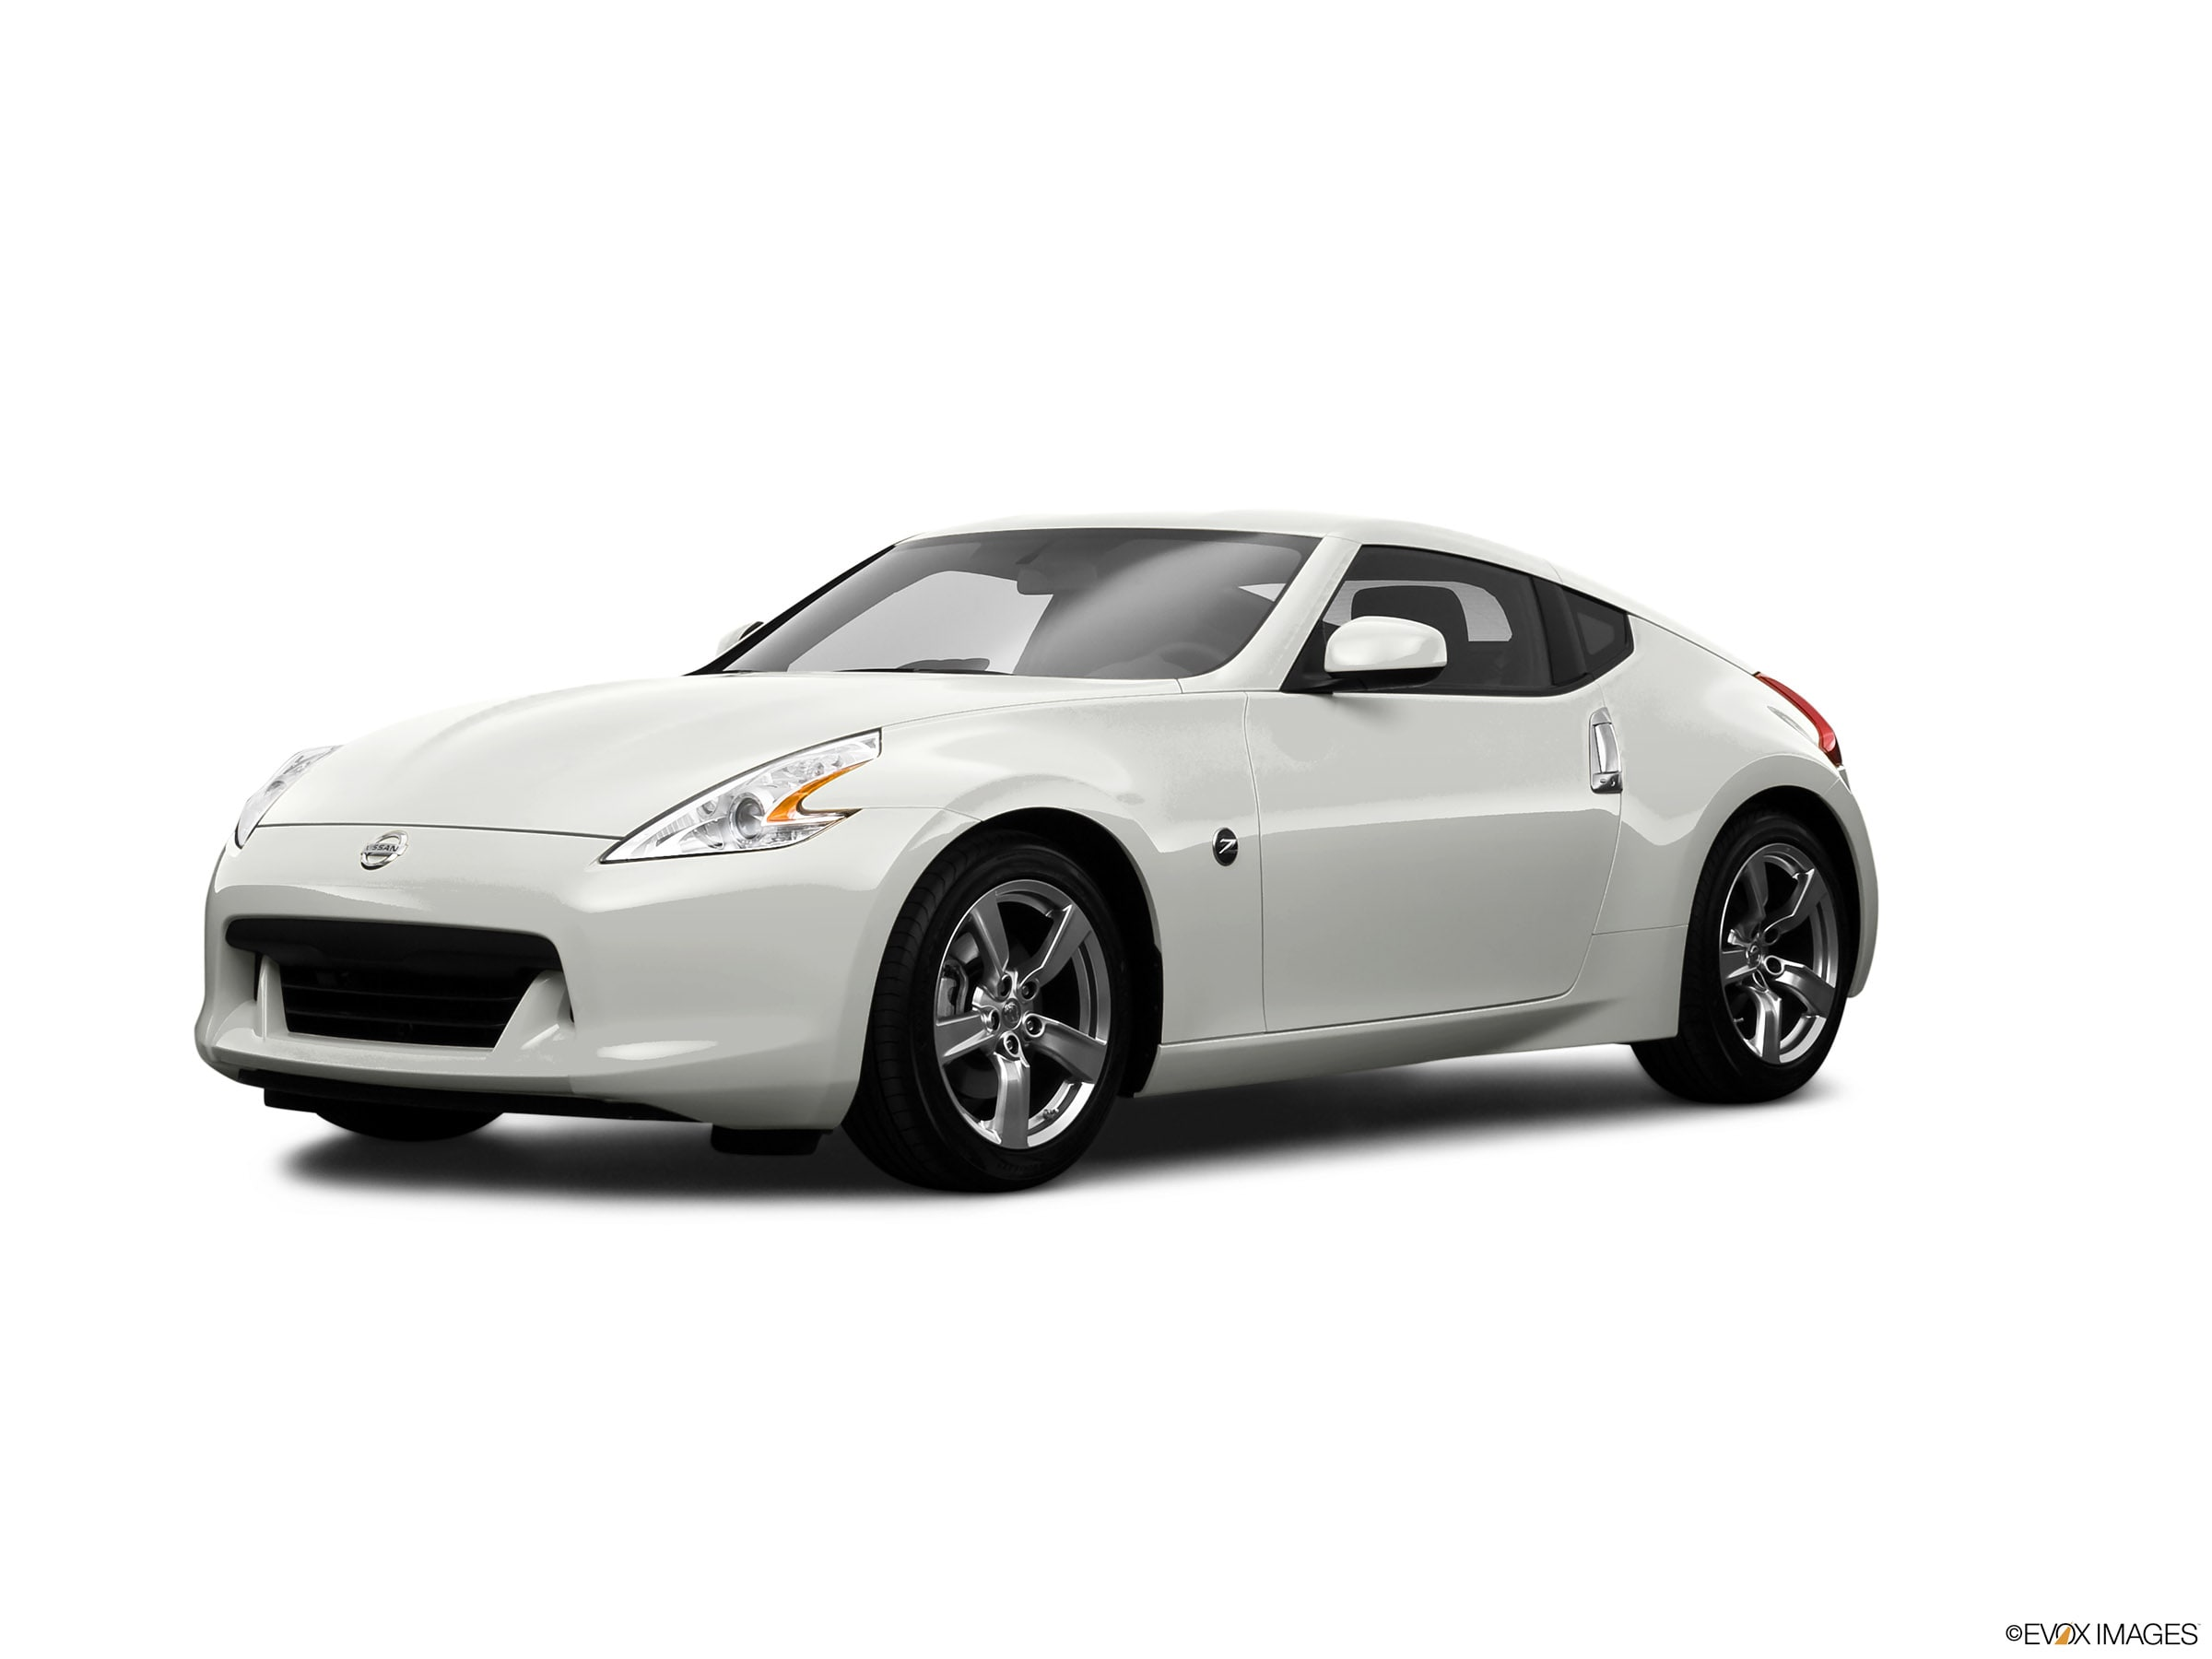 Photo 2009 Nissan 370Z Touring Coupe XSE serving Oakland, CA